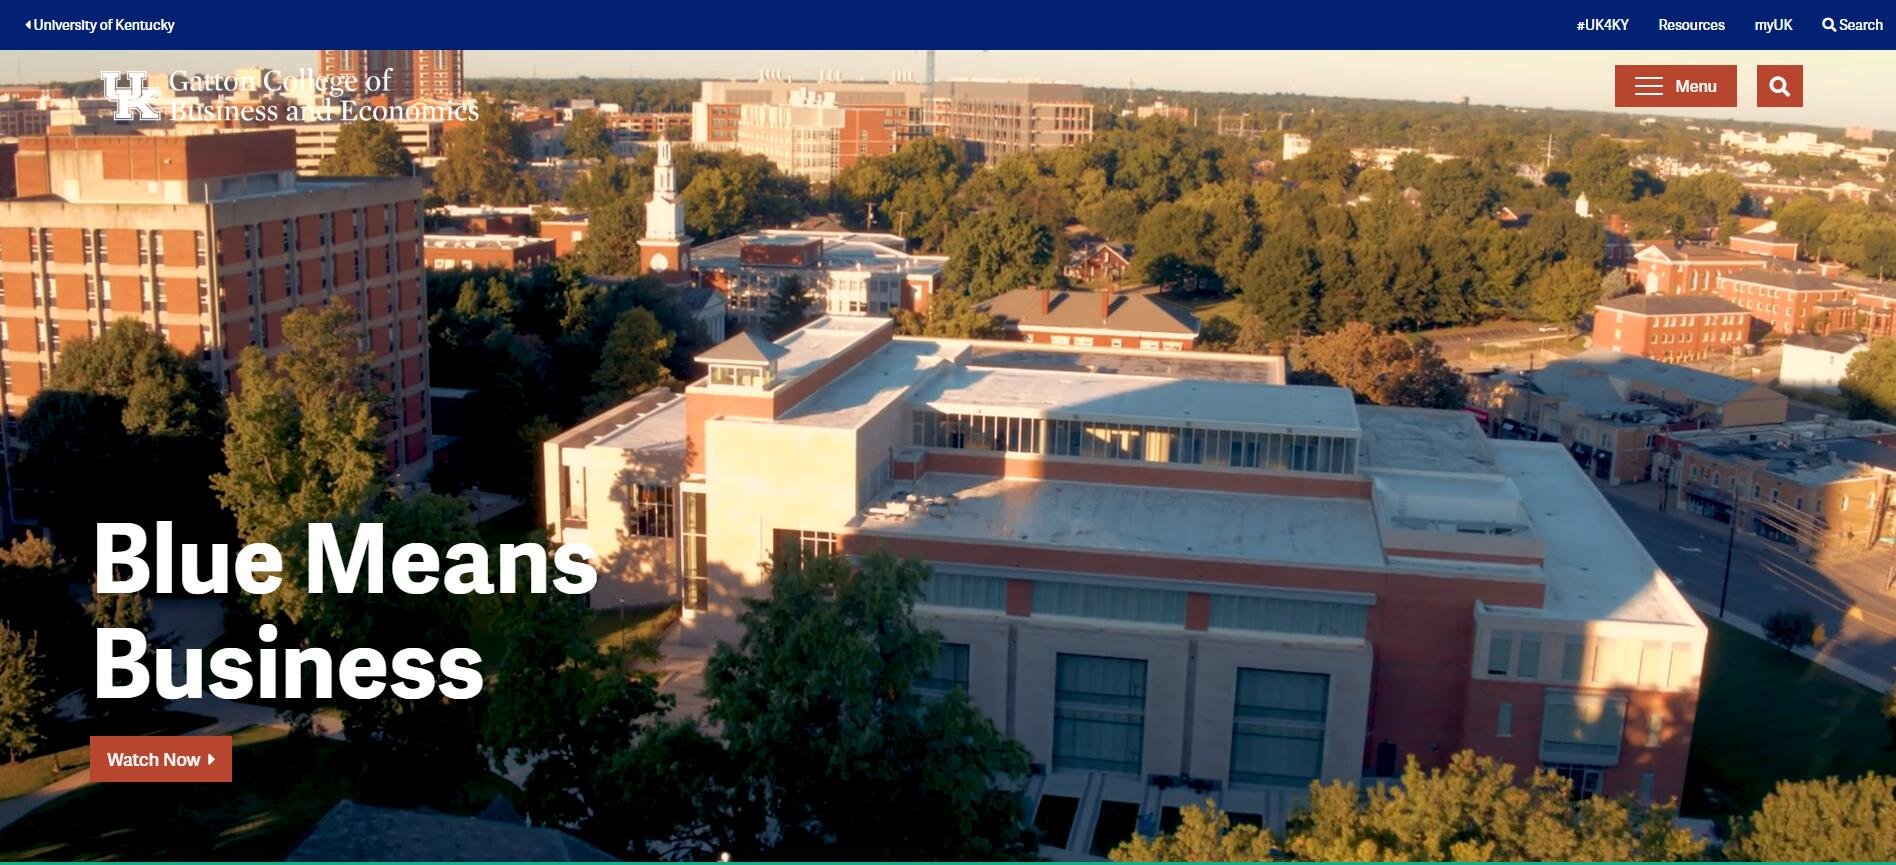 The Gatton College of Business and Economics at University of Kentucky